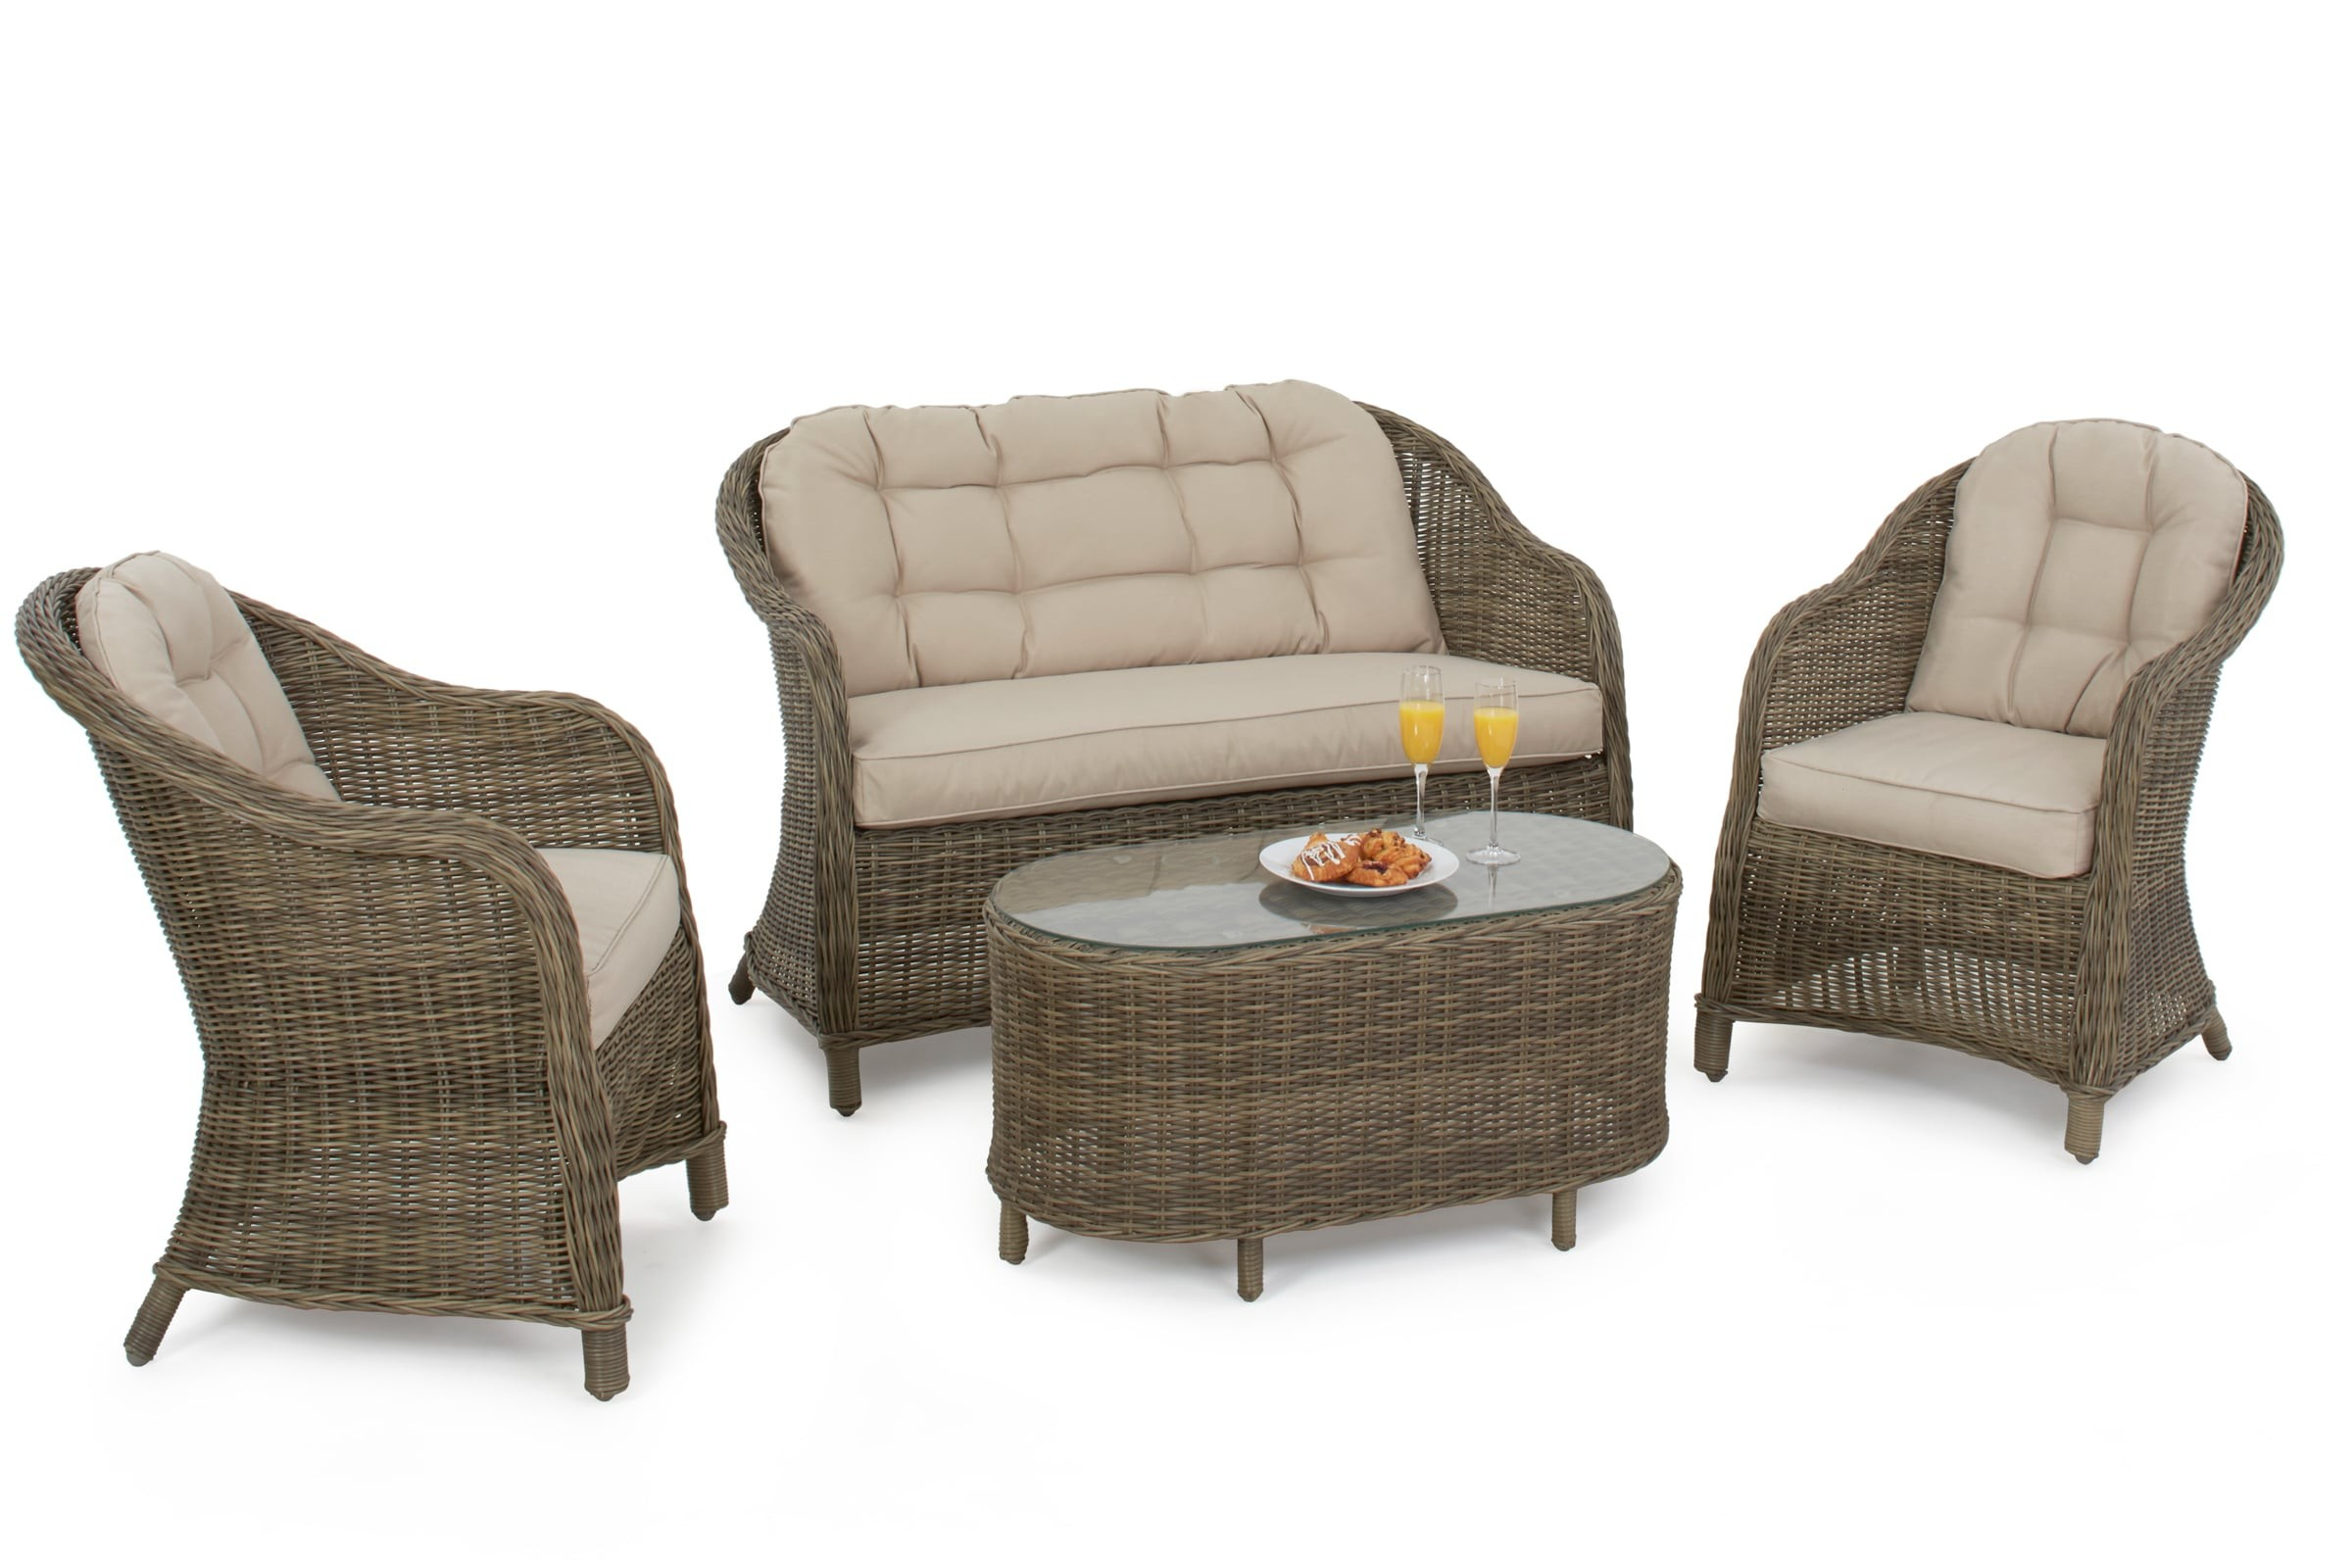 Maze Rattan Winchester Round High Back Sofa Set | Rattan Within Sofas With High Backs (View 10 of 15)